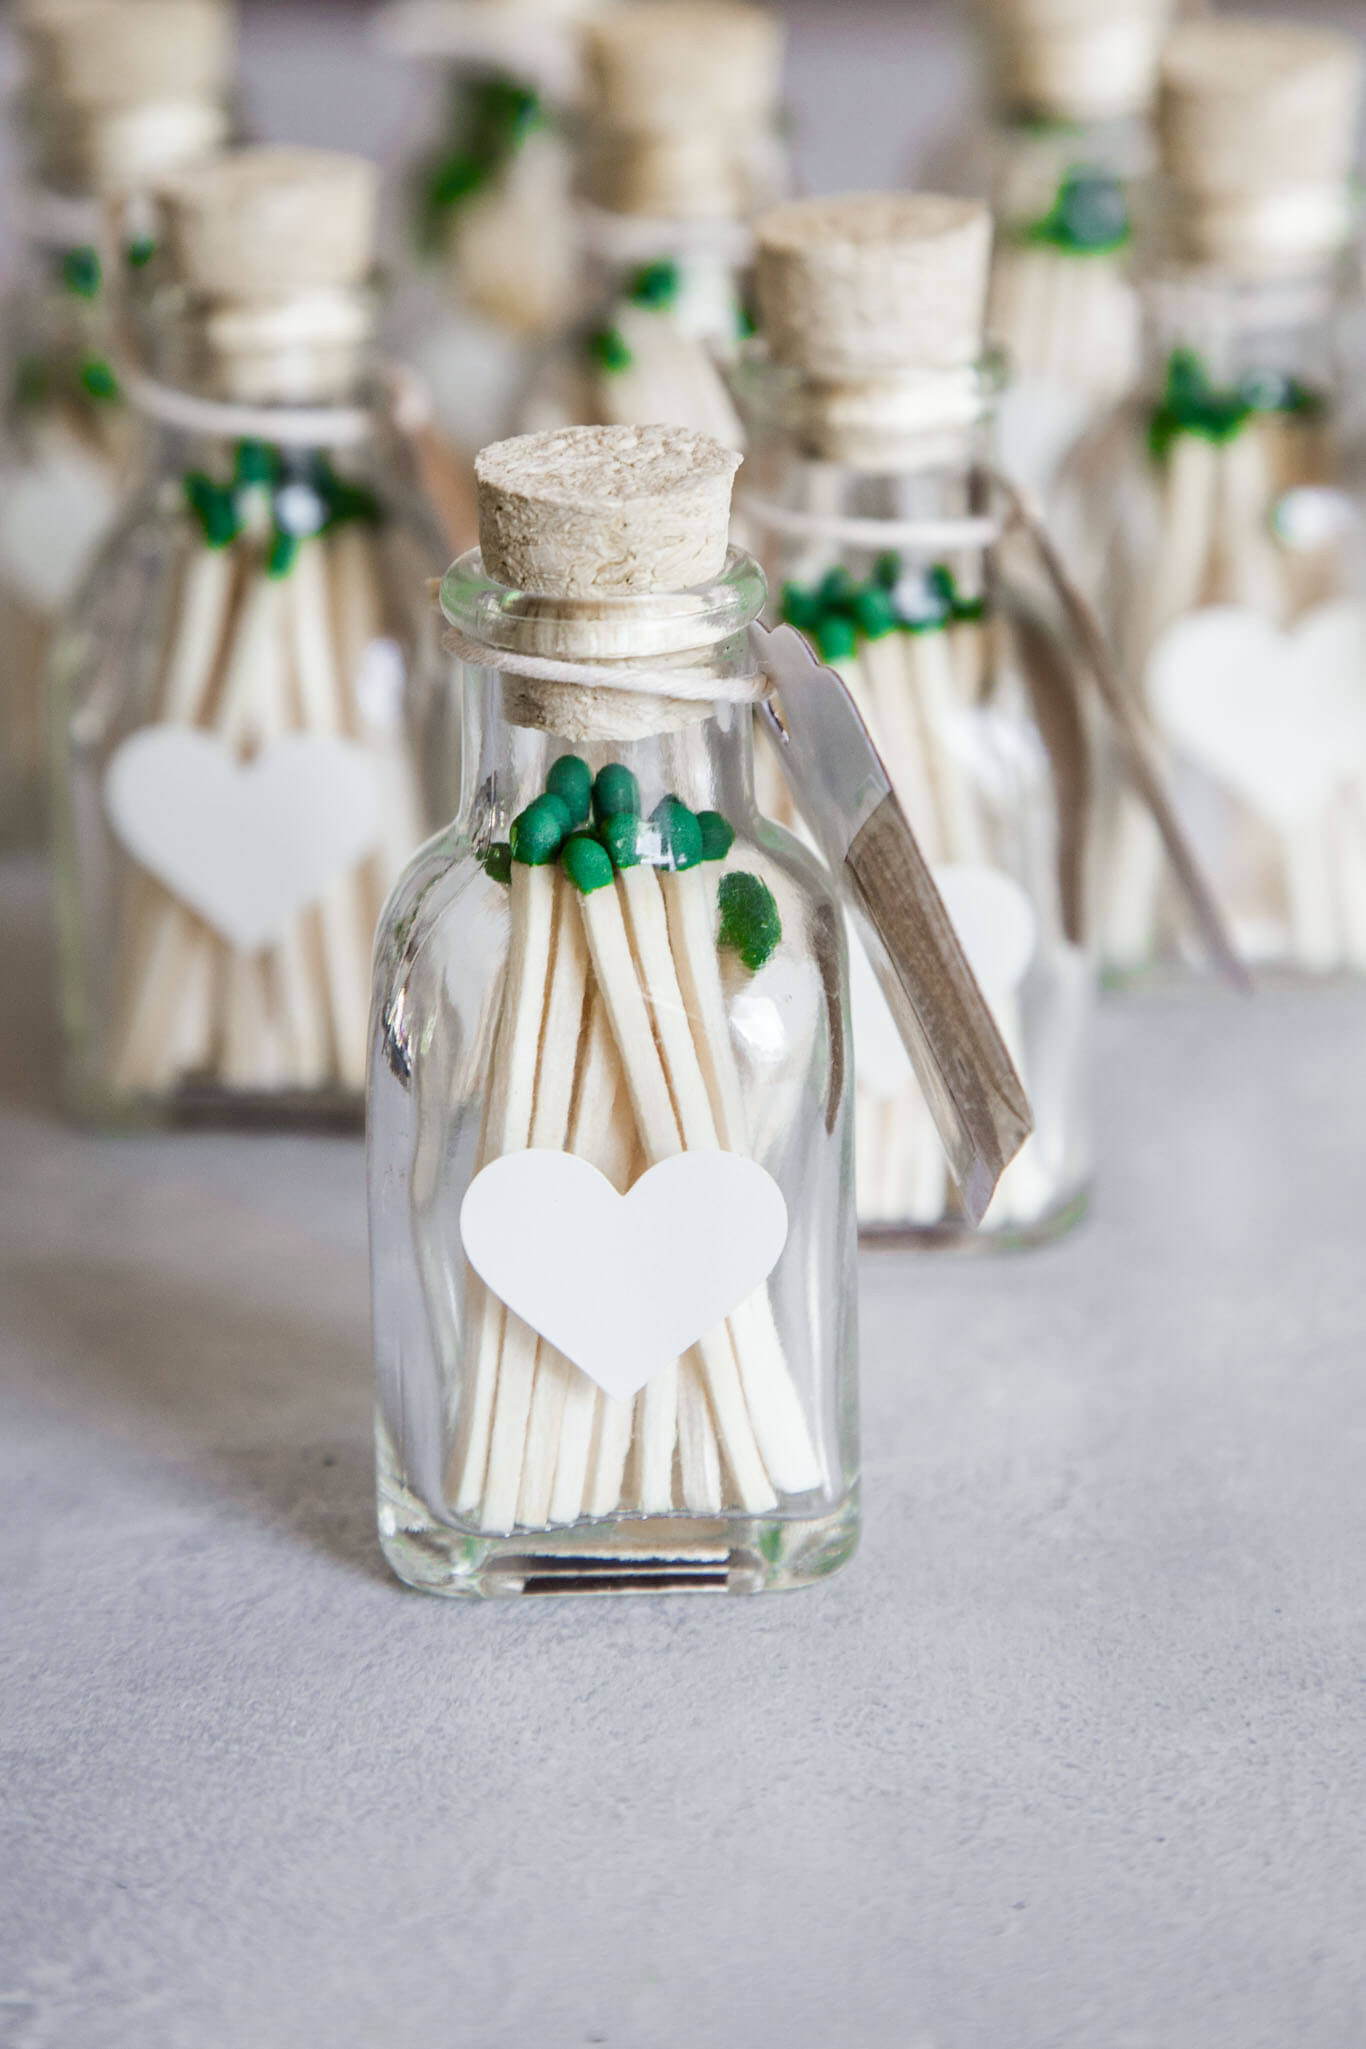 Best ideas about DIY Wedding Favors . Save or Pin Wedding Matches DIY Wedding Favors Now.